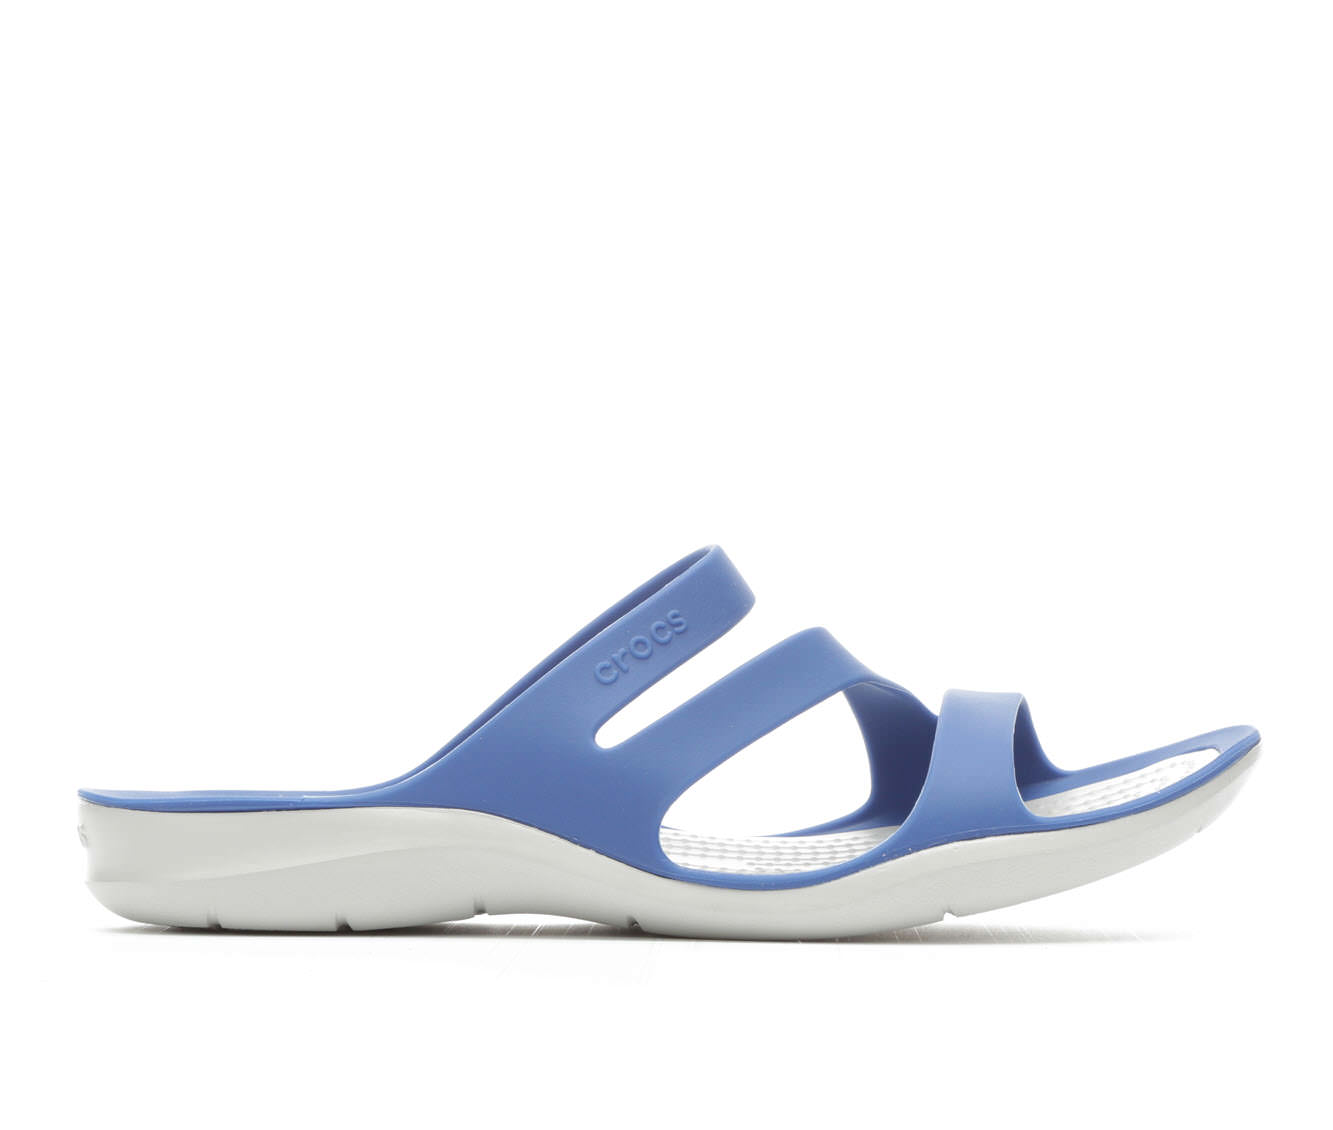 Women's Crocs Swiftwater Sandal W Sandals (Blue)